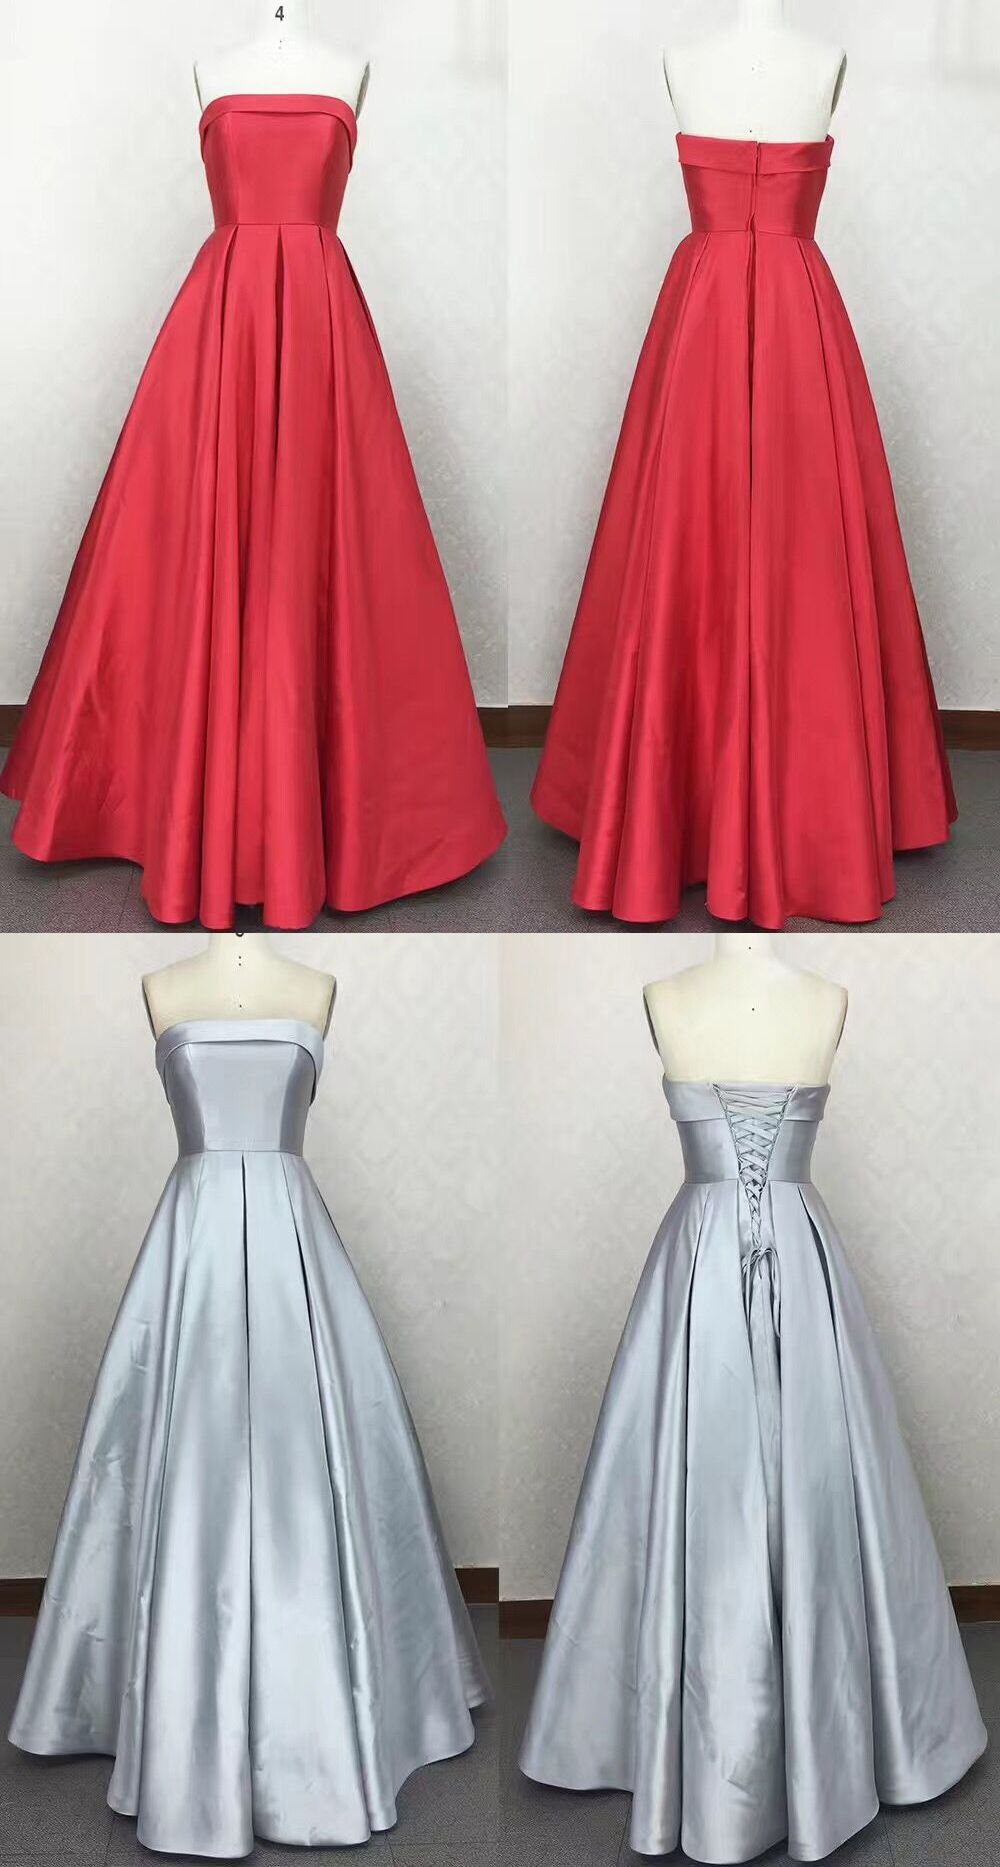 Strapless satin red prom dress silver wedding party formal gown in